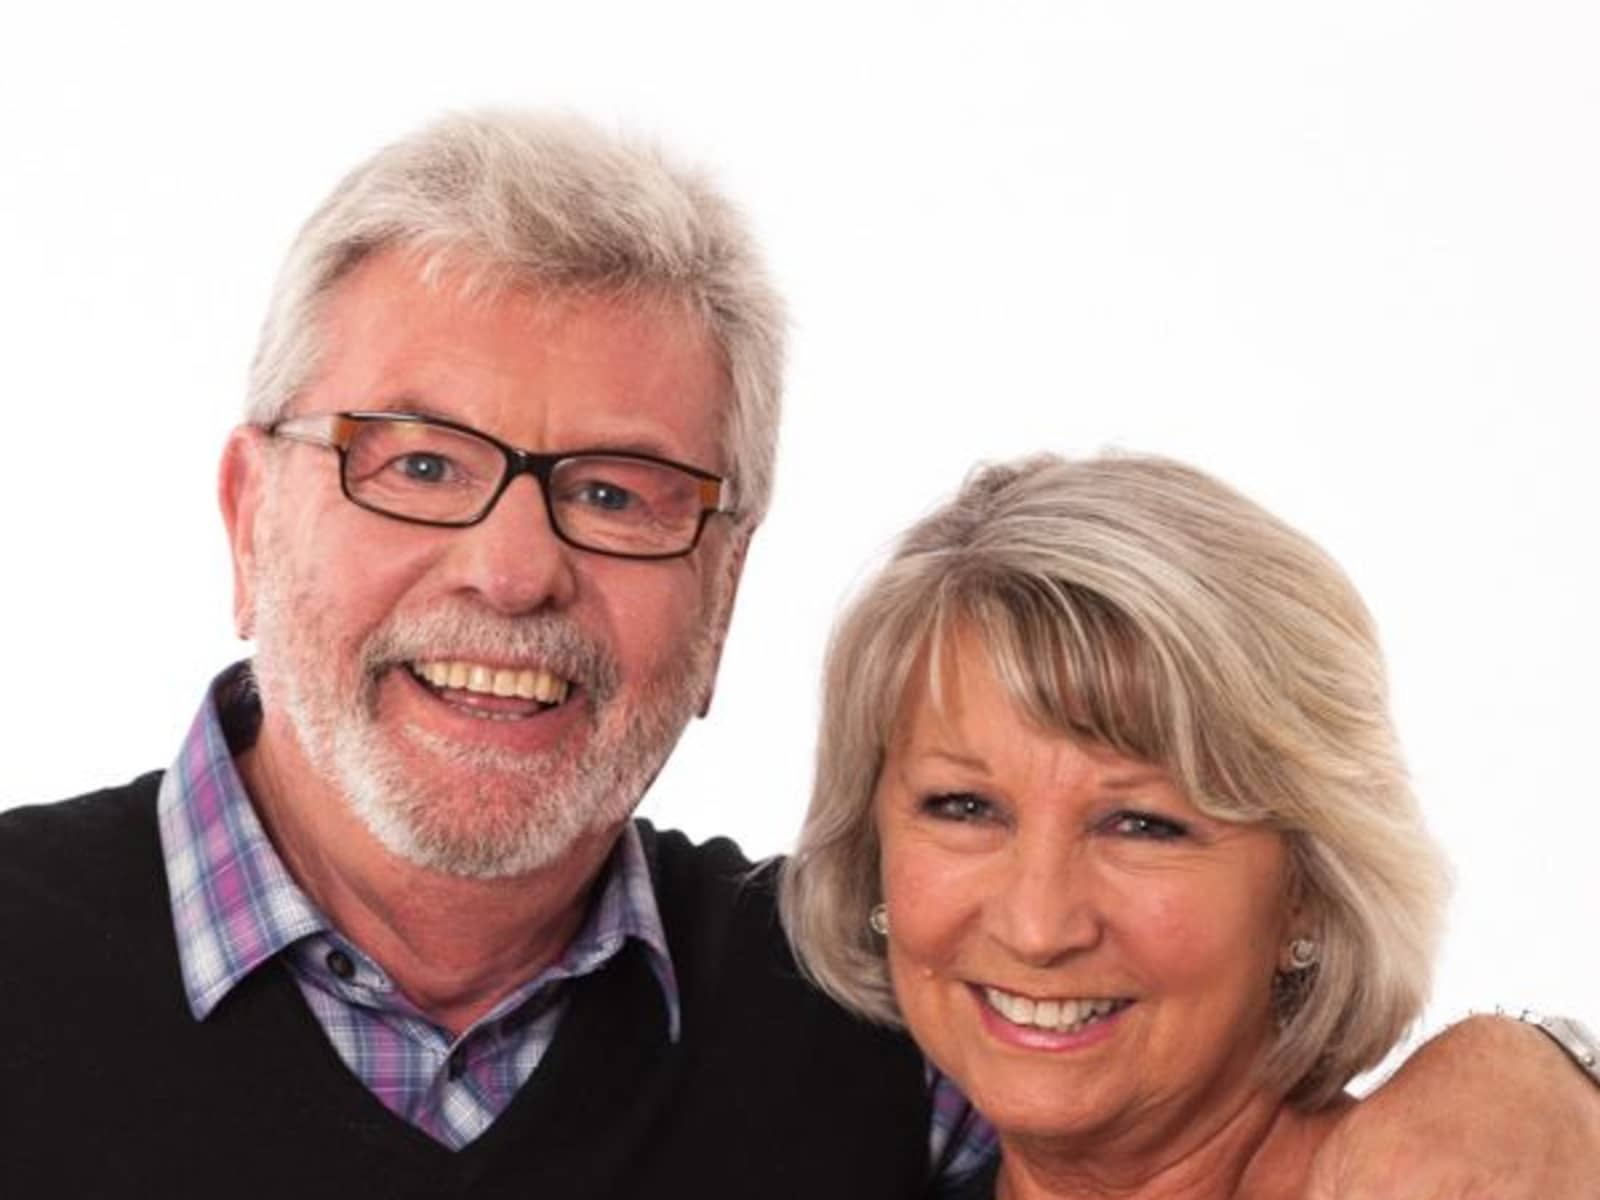 Valerie & Croz from Staines, United Kingdom